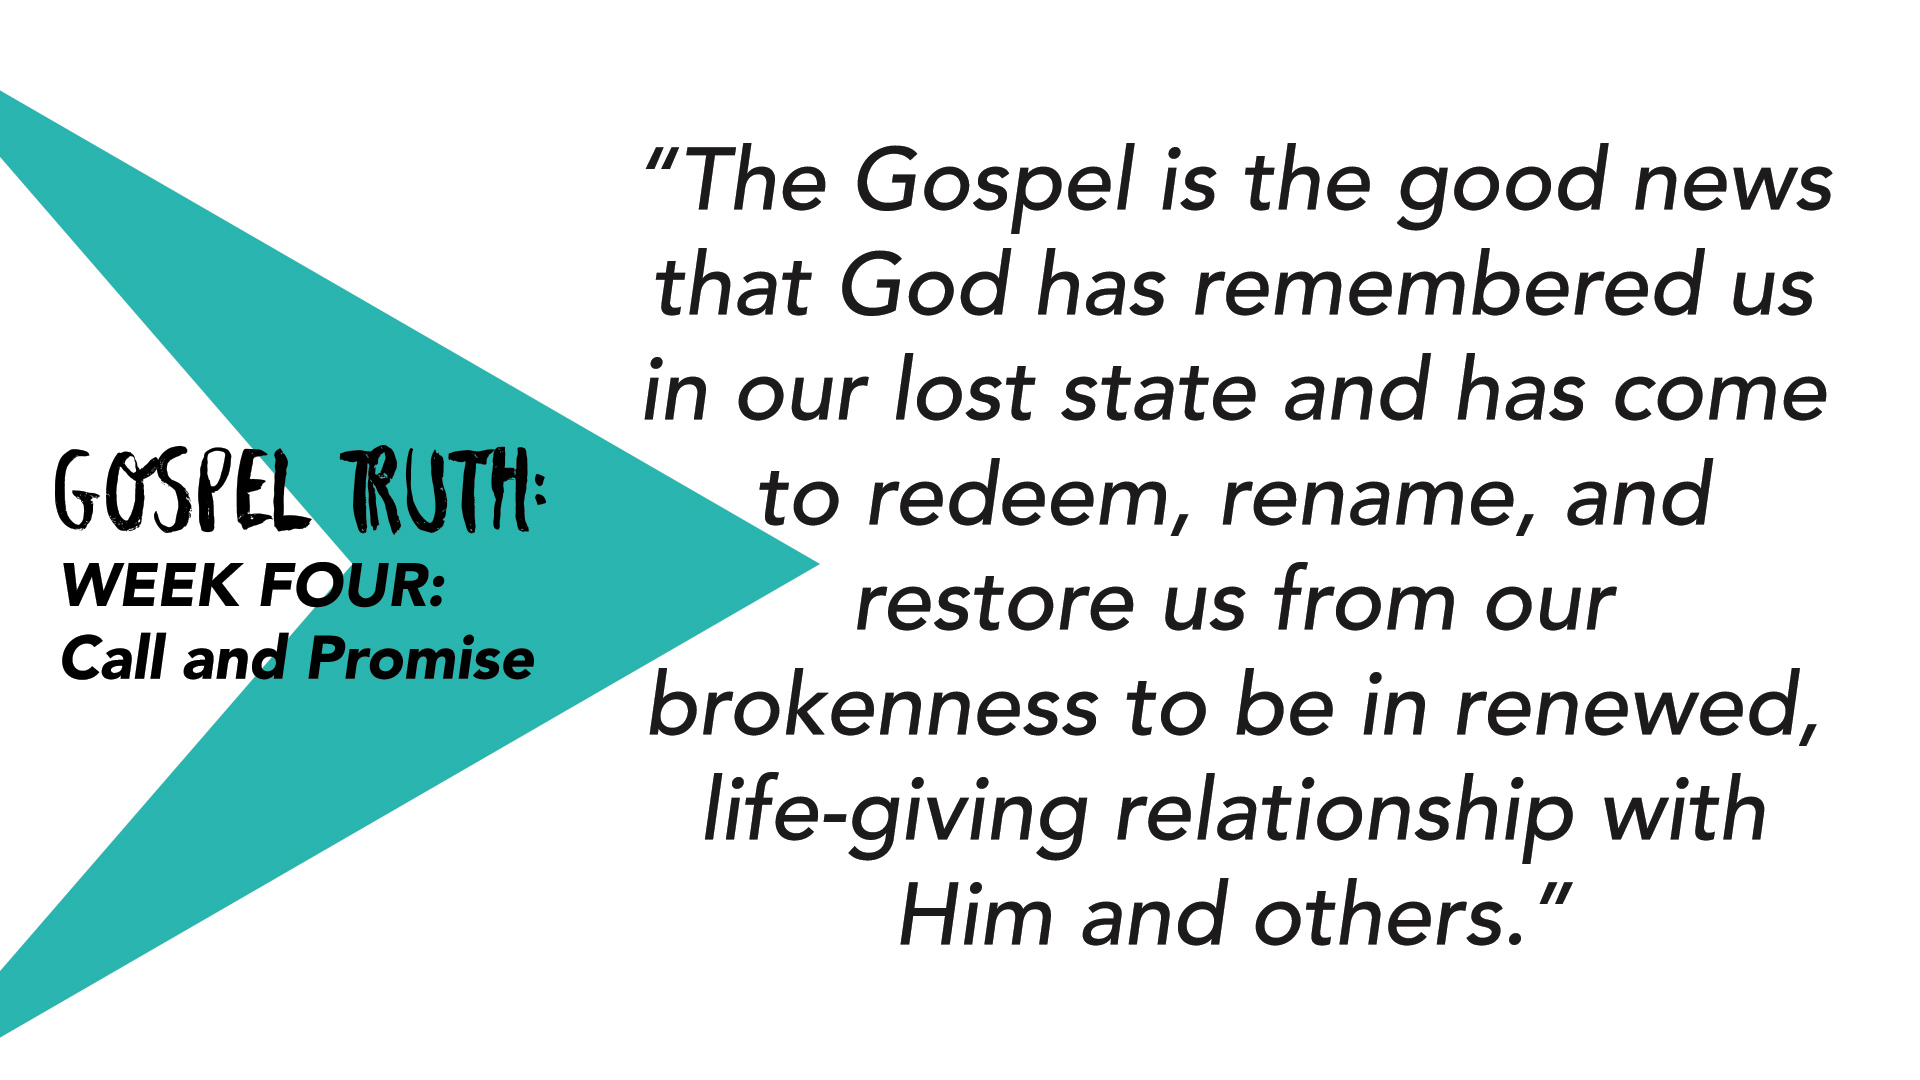 """The Gospel is the good news that God has remembered us in our lost state and has come to redeem, rename, and restore us from our brokenness to be in renewed, life-giving relationship with Him and others."""